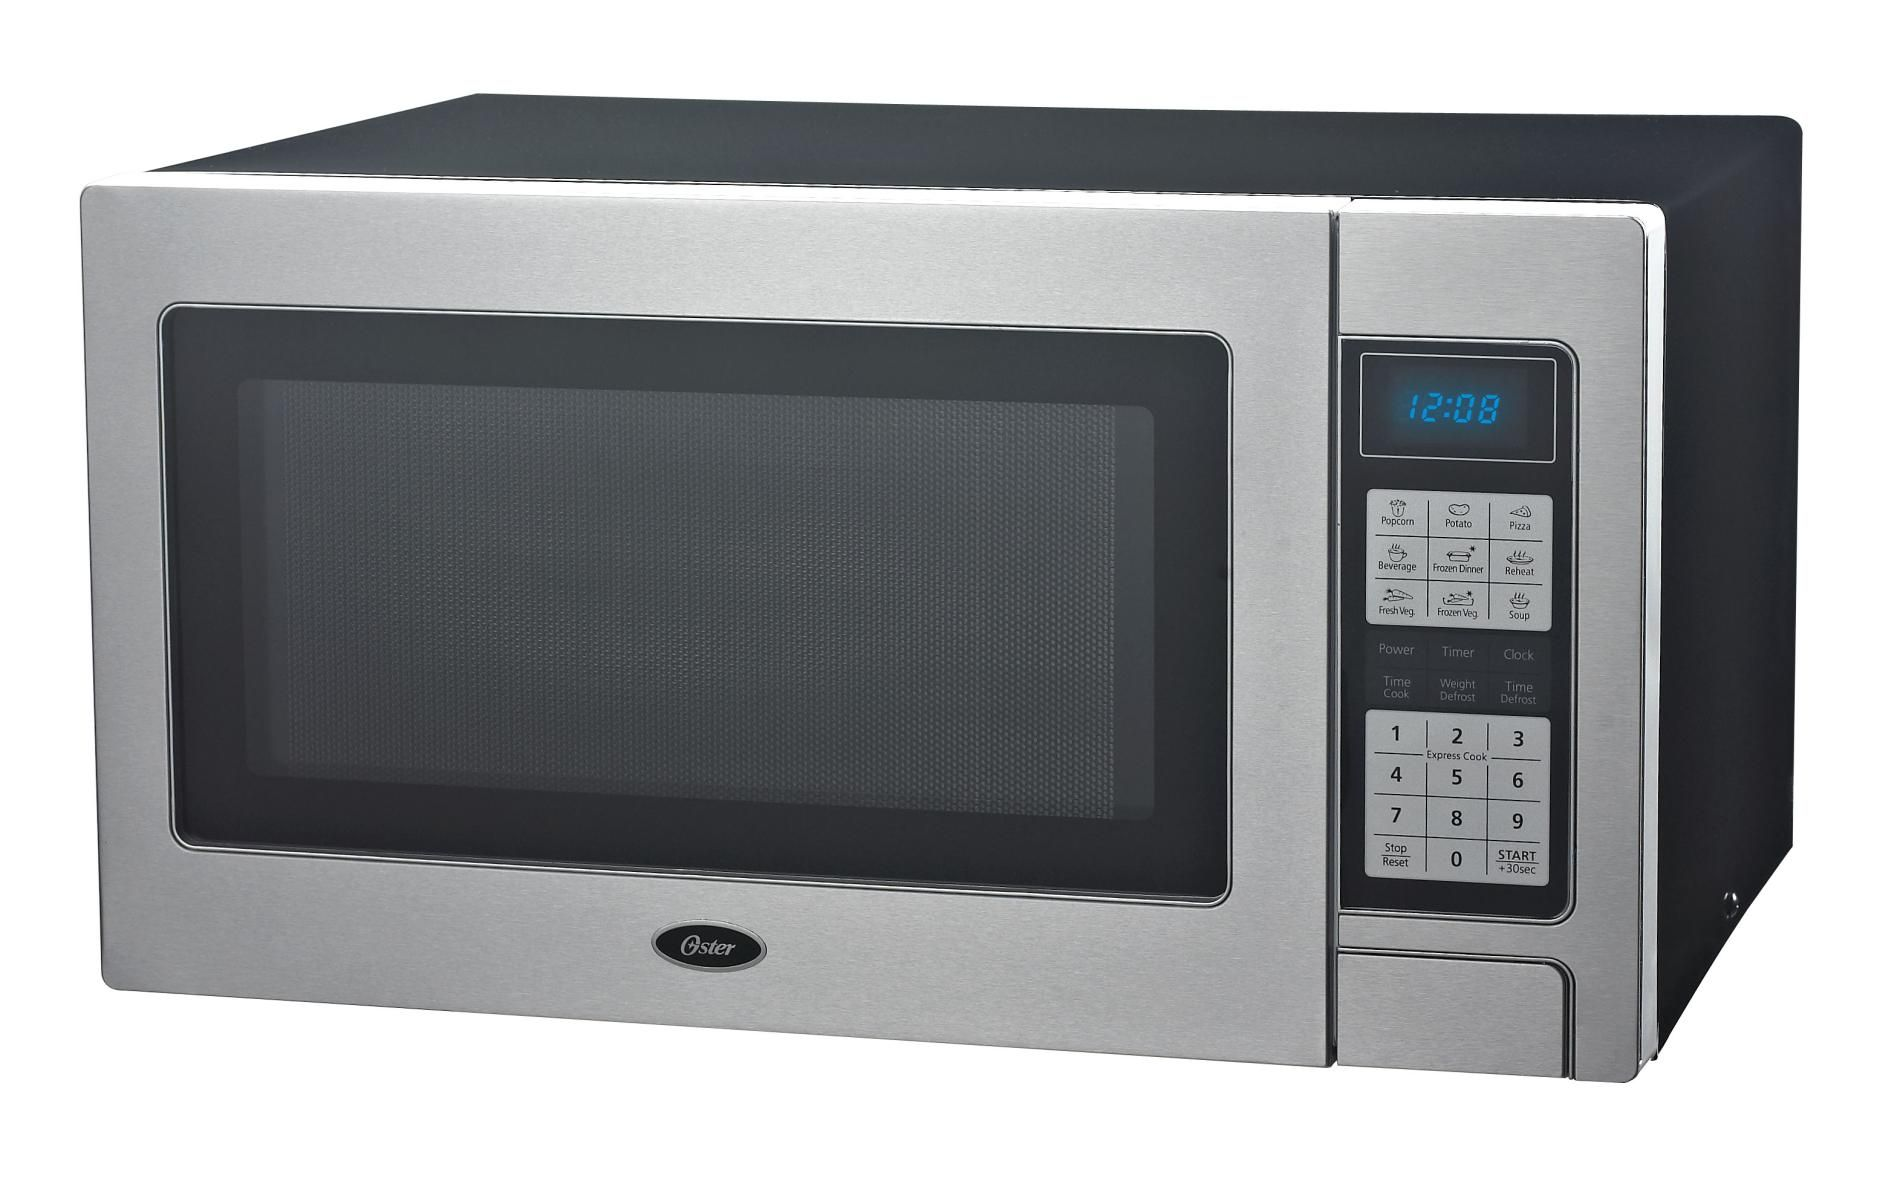 Pin by Jan Comfort on Trustworthy Products Microwave